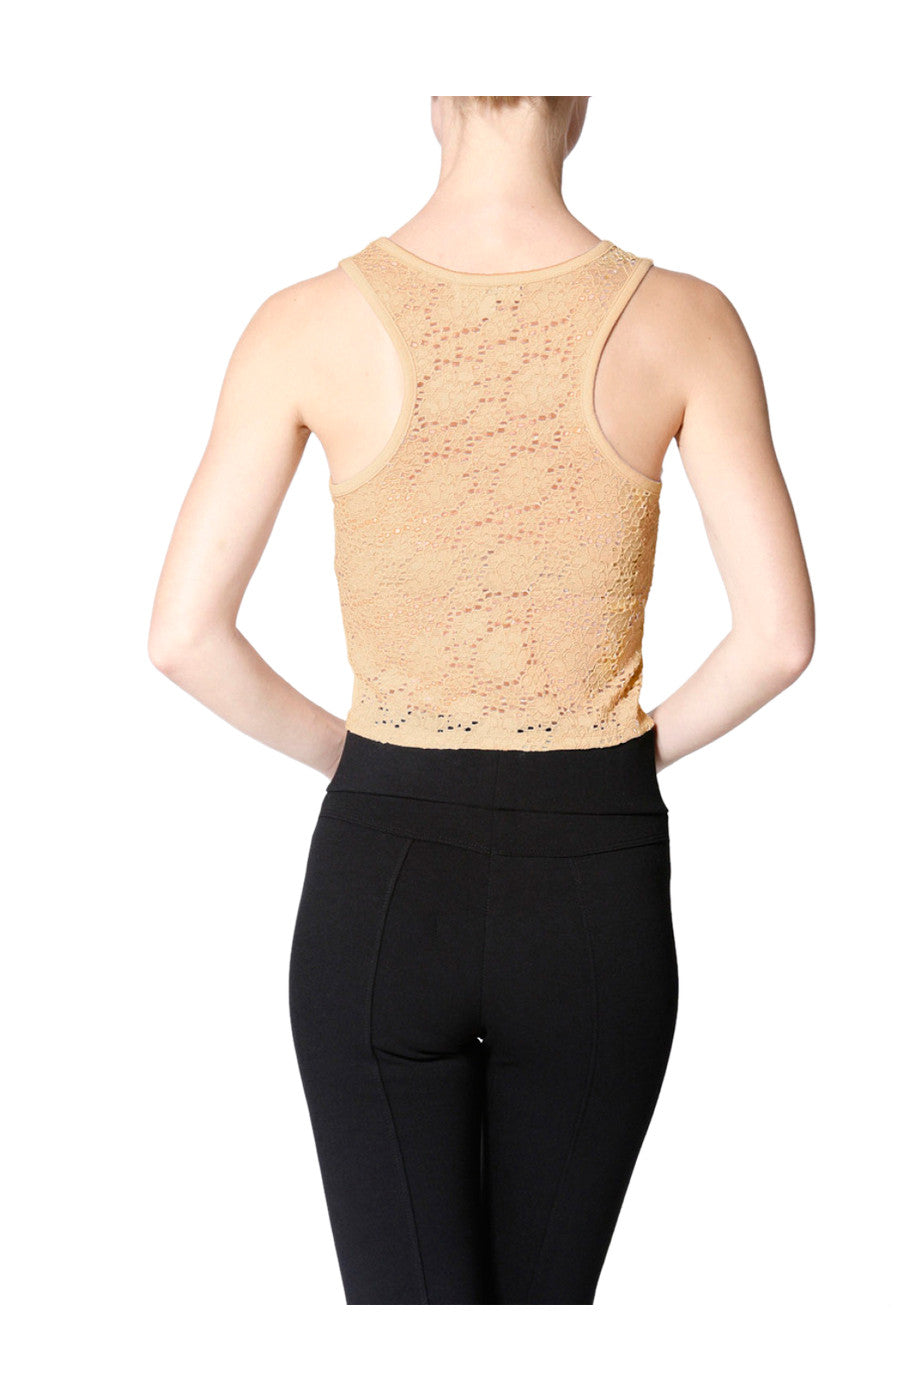 ac3ea1f494aa6 Sleeveless Crop Top With Sheer Lace Racer Back – BodiLove Fashion Store